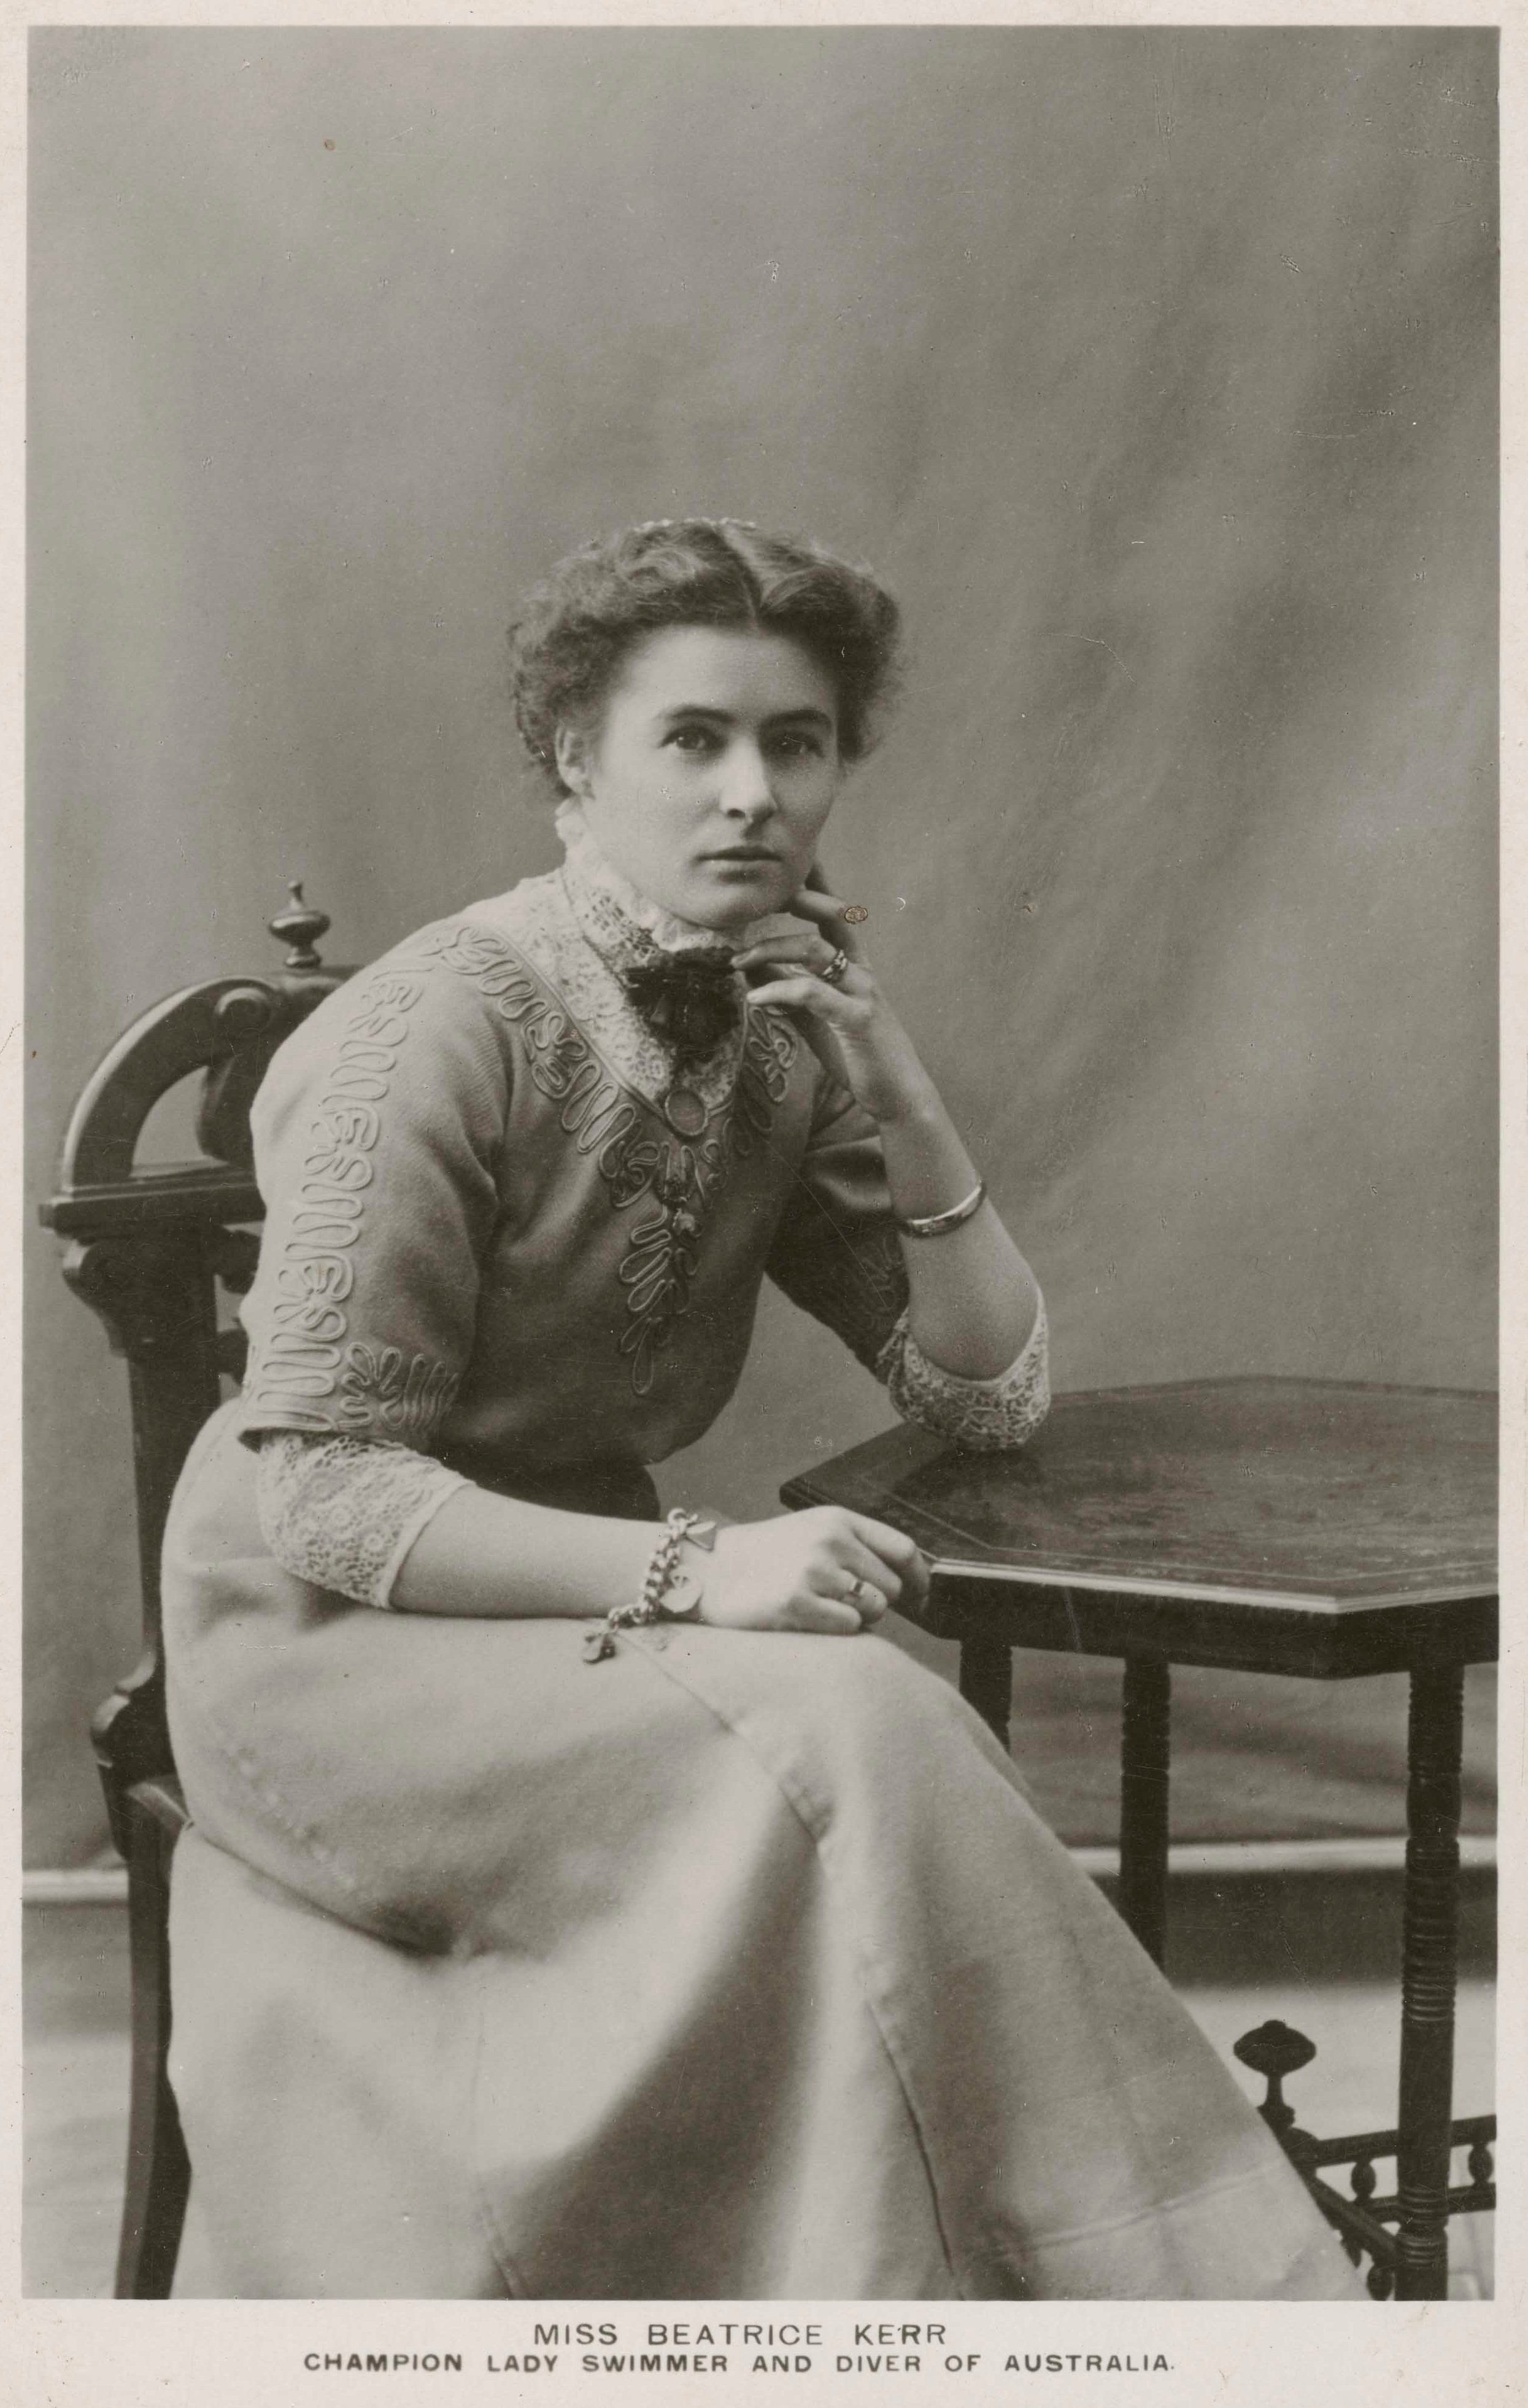 Postcard featuring a photograph of Beatrice Kerr